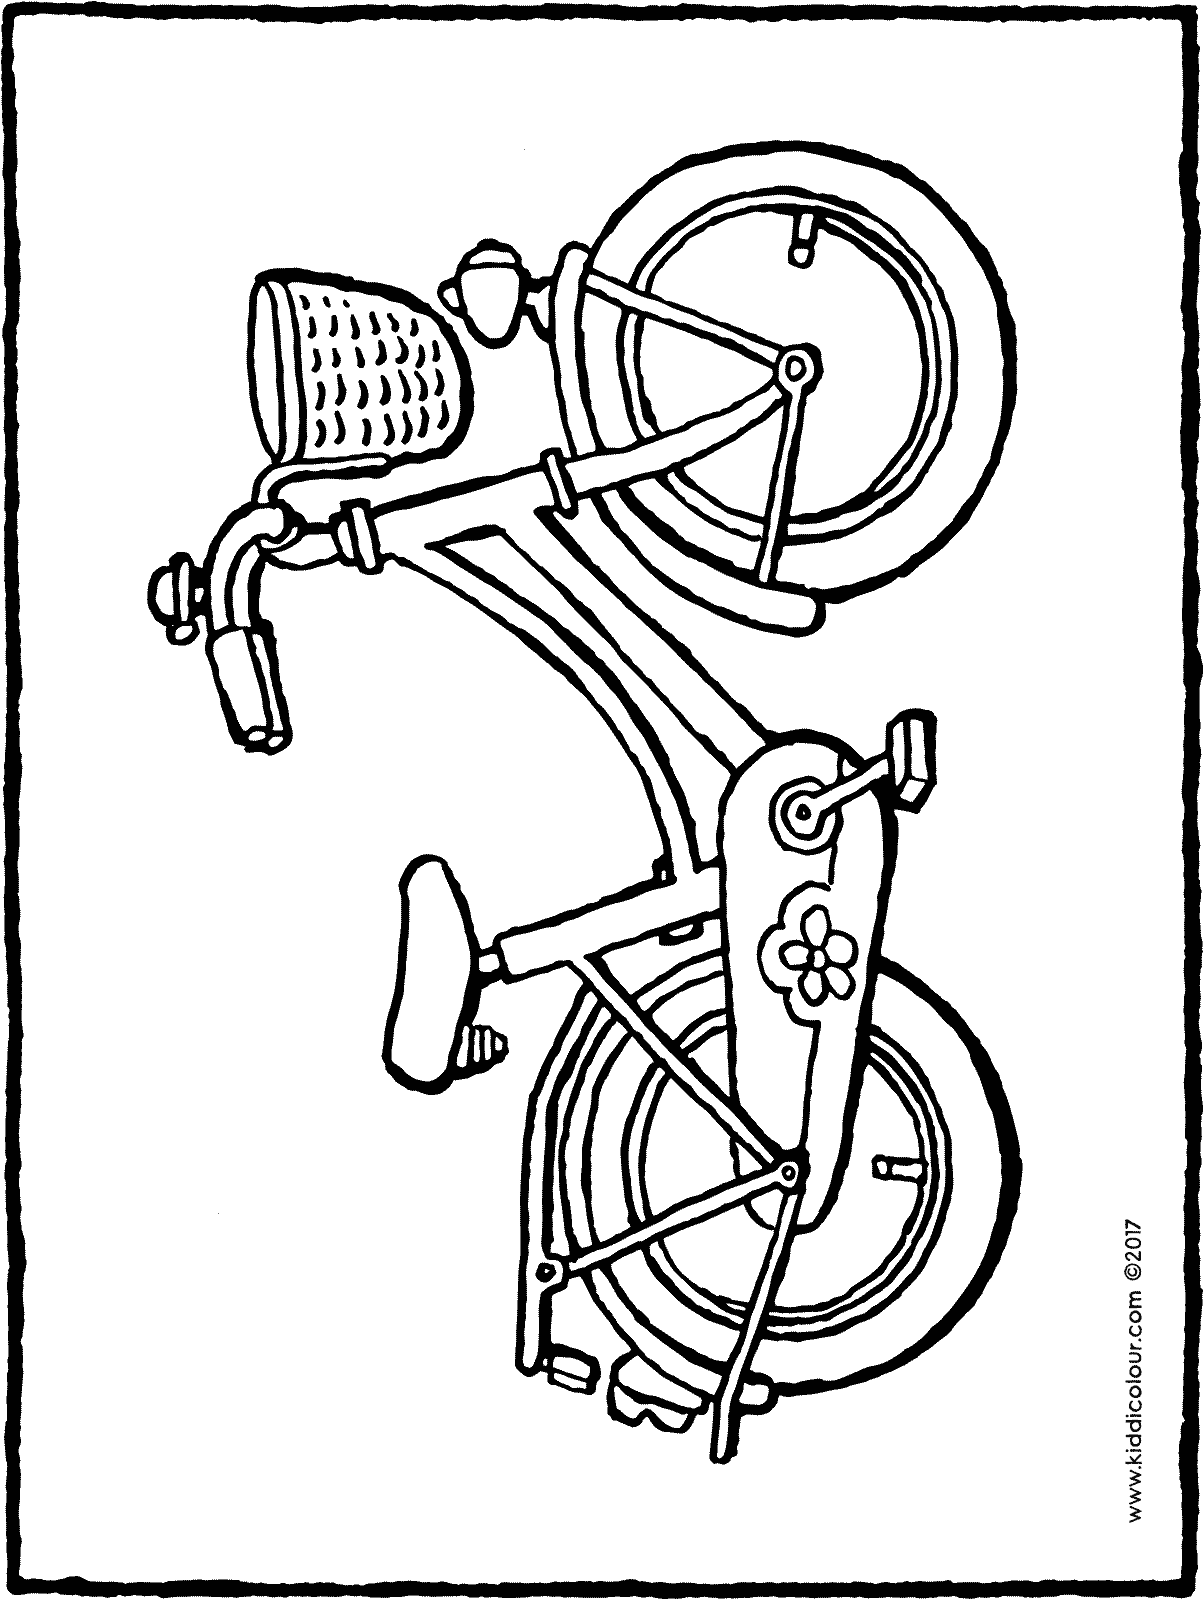 girl's bicycle colouring page drawing picture 01H